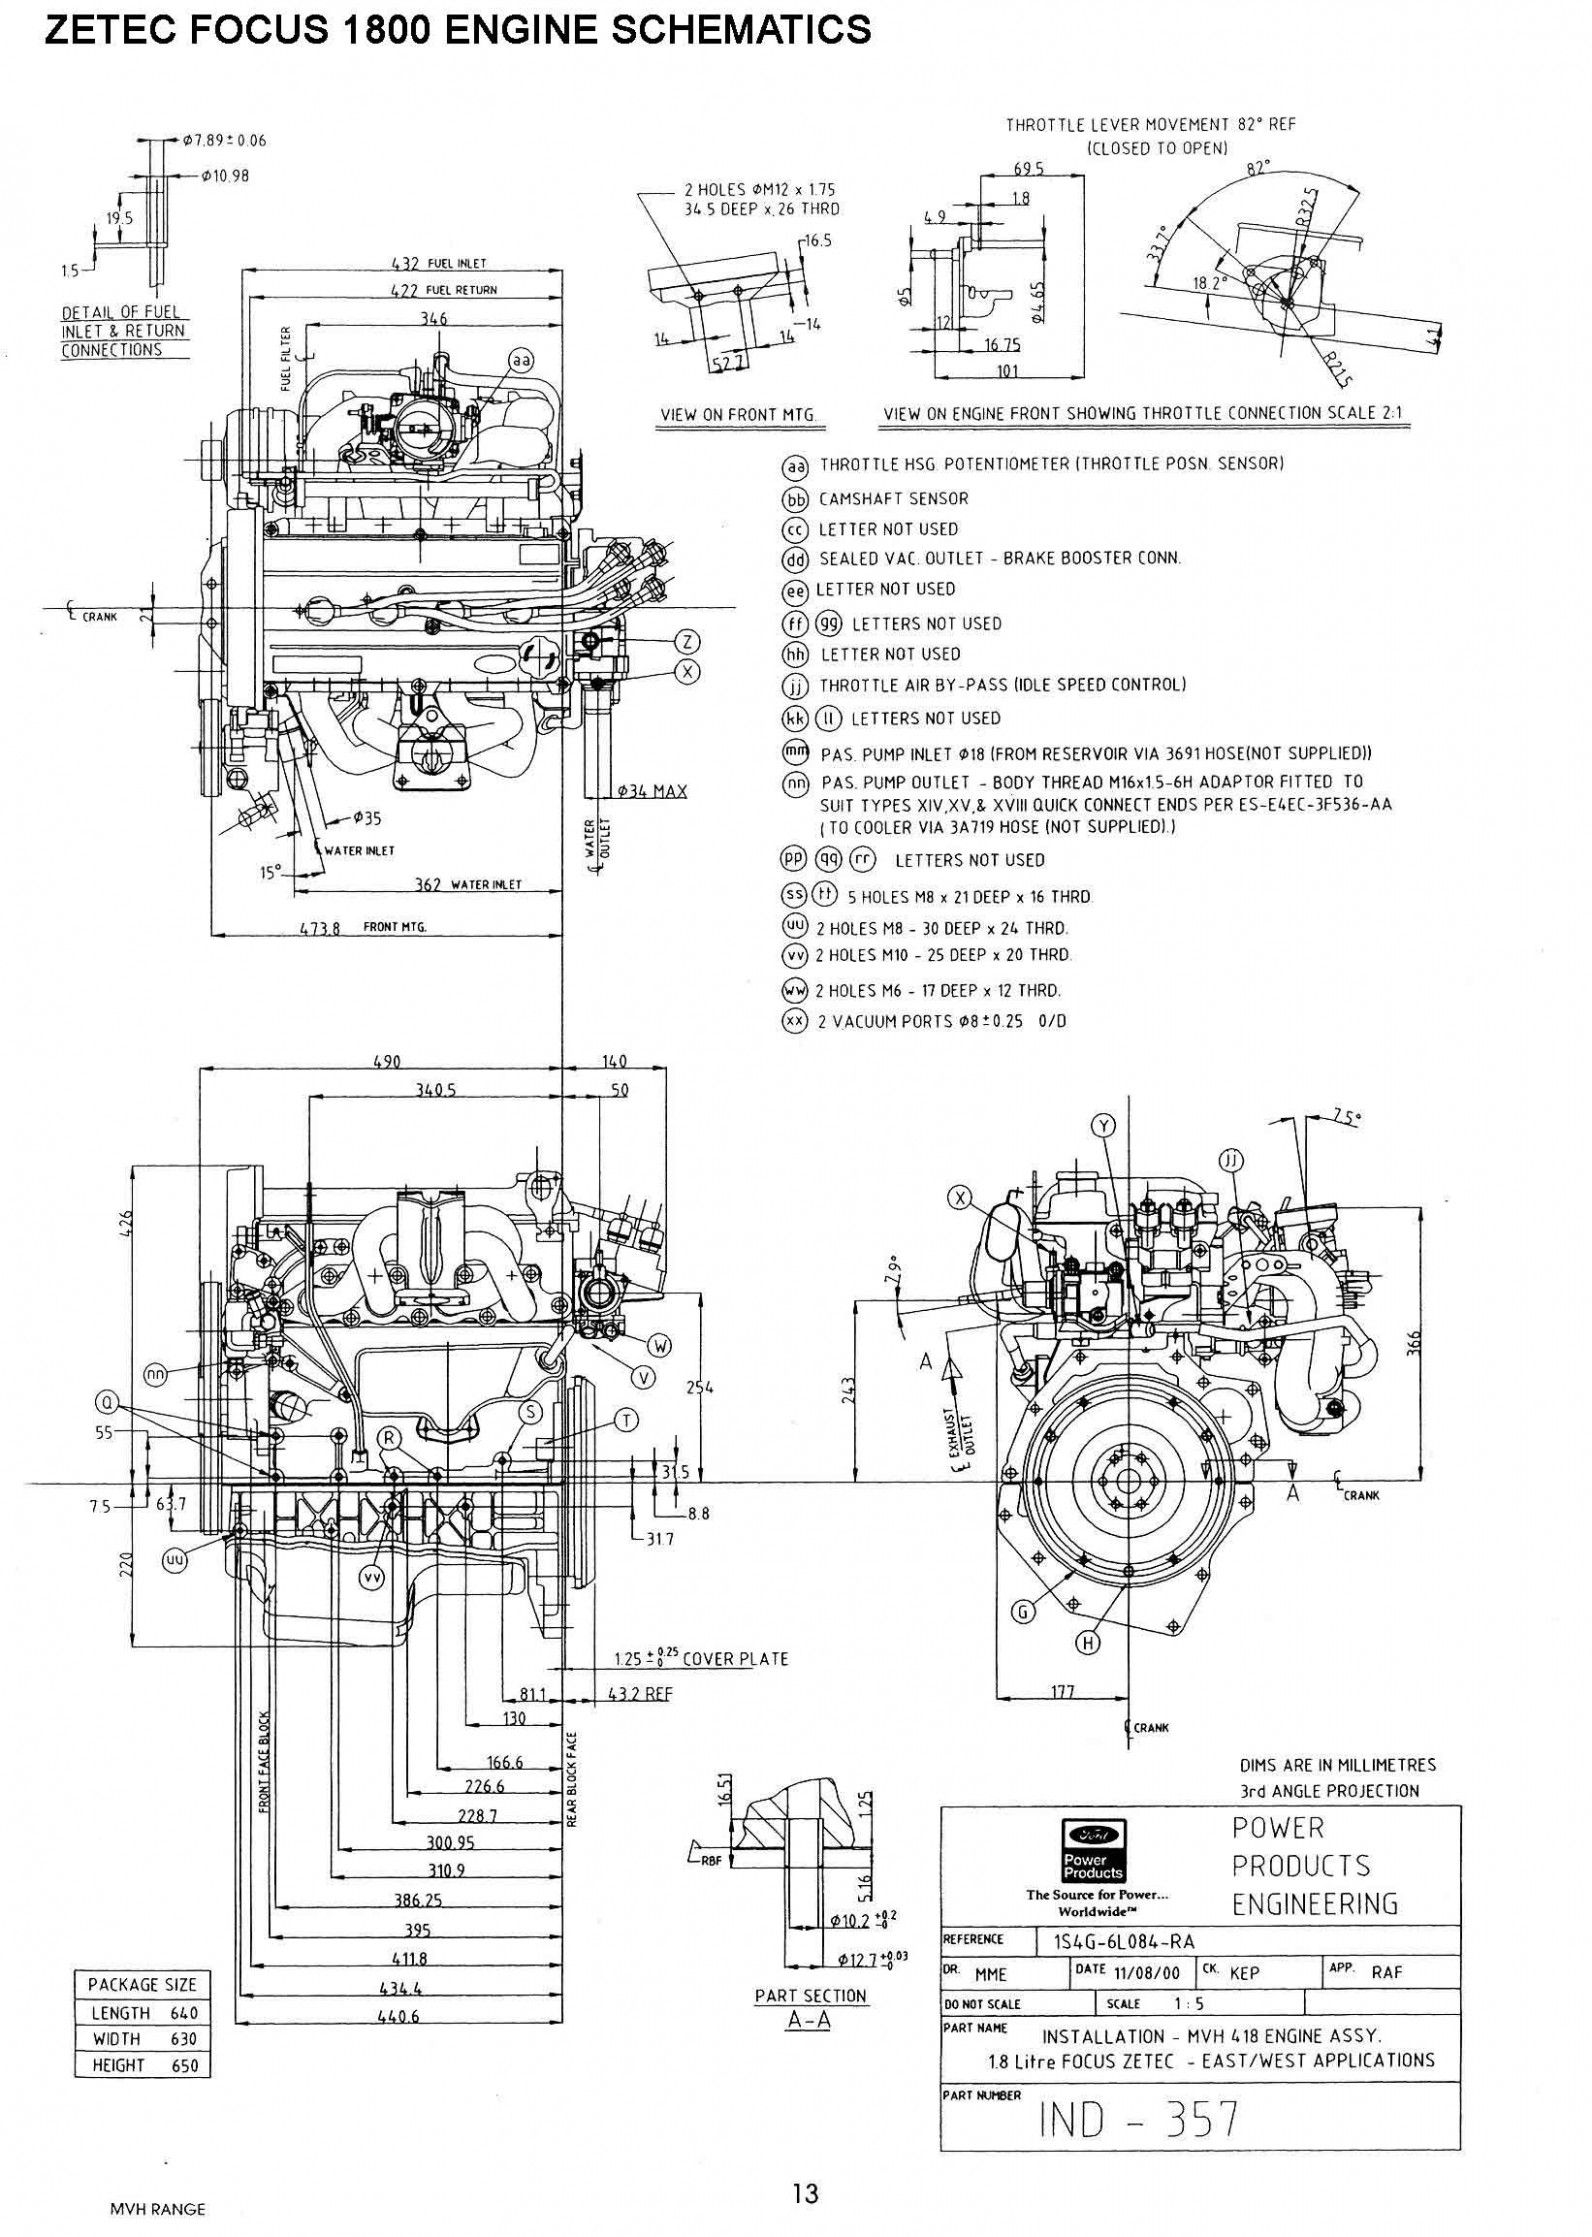 Ford Focus Mk8 Engine Diagram Di